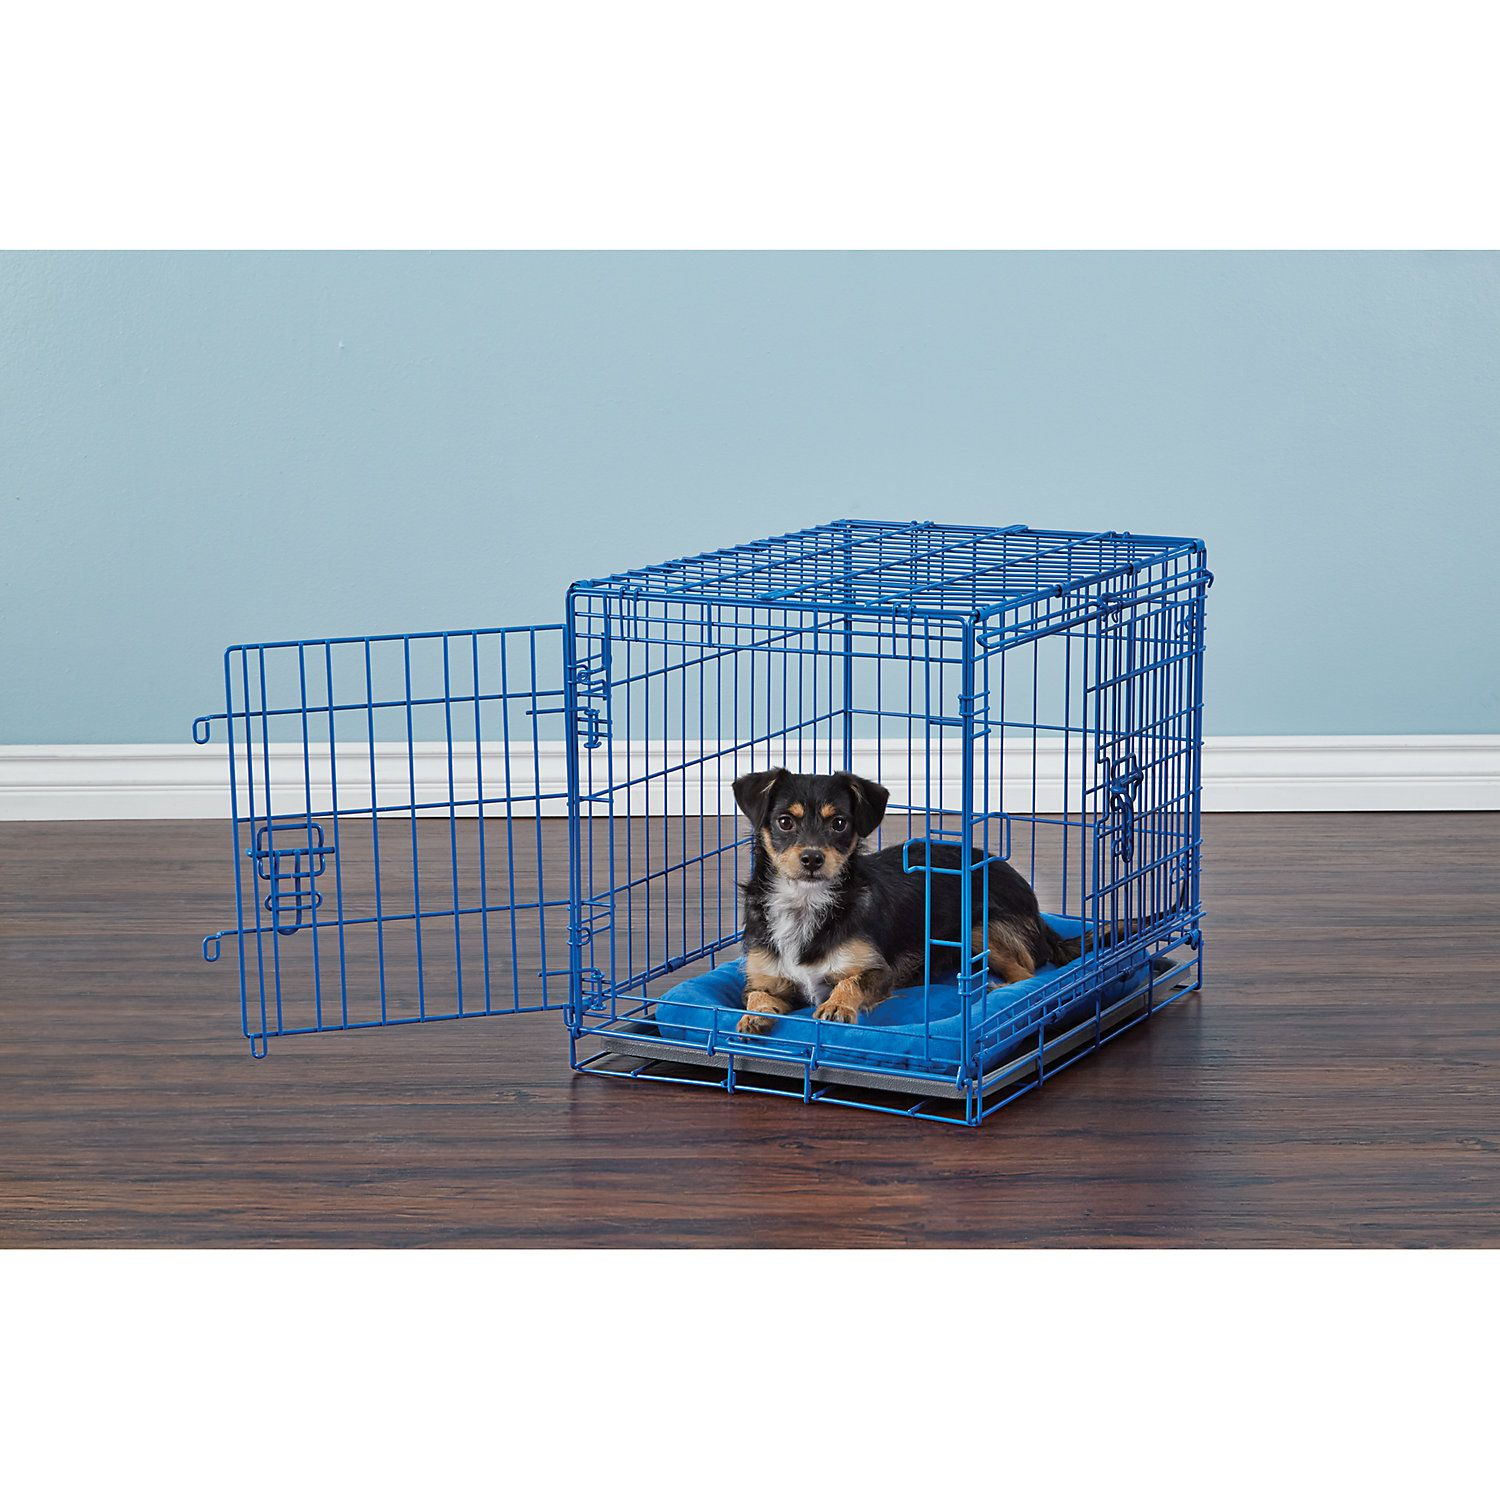 You Me 2 Door Training Crate Blue Dog Crate Large Dog Crate